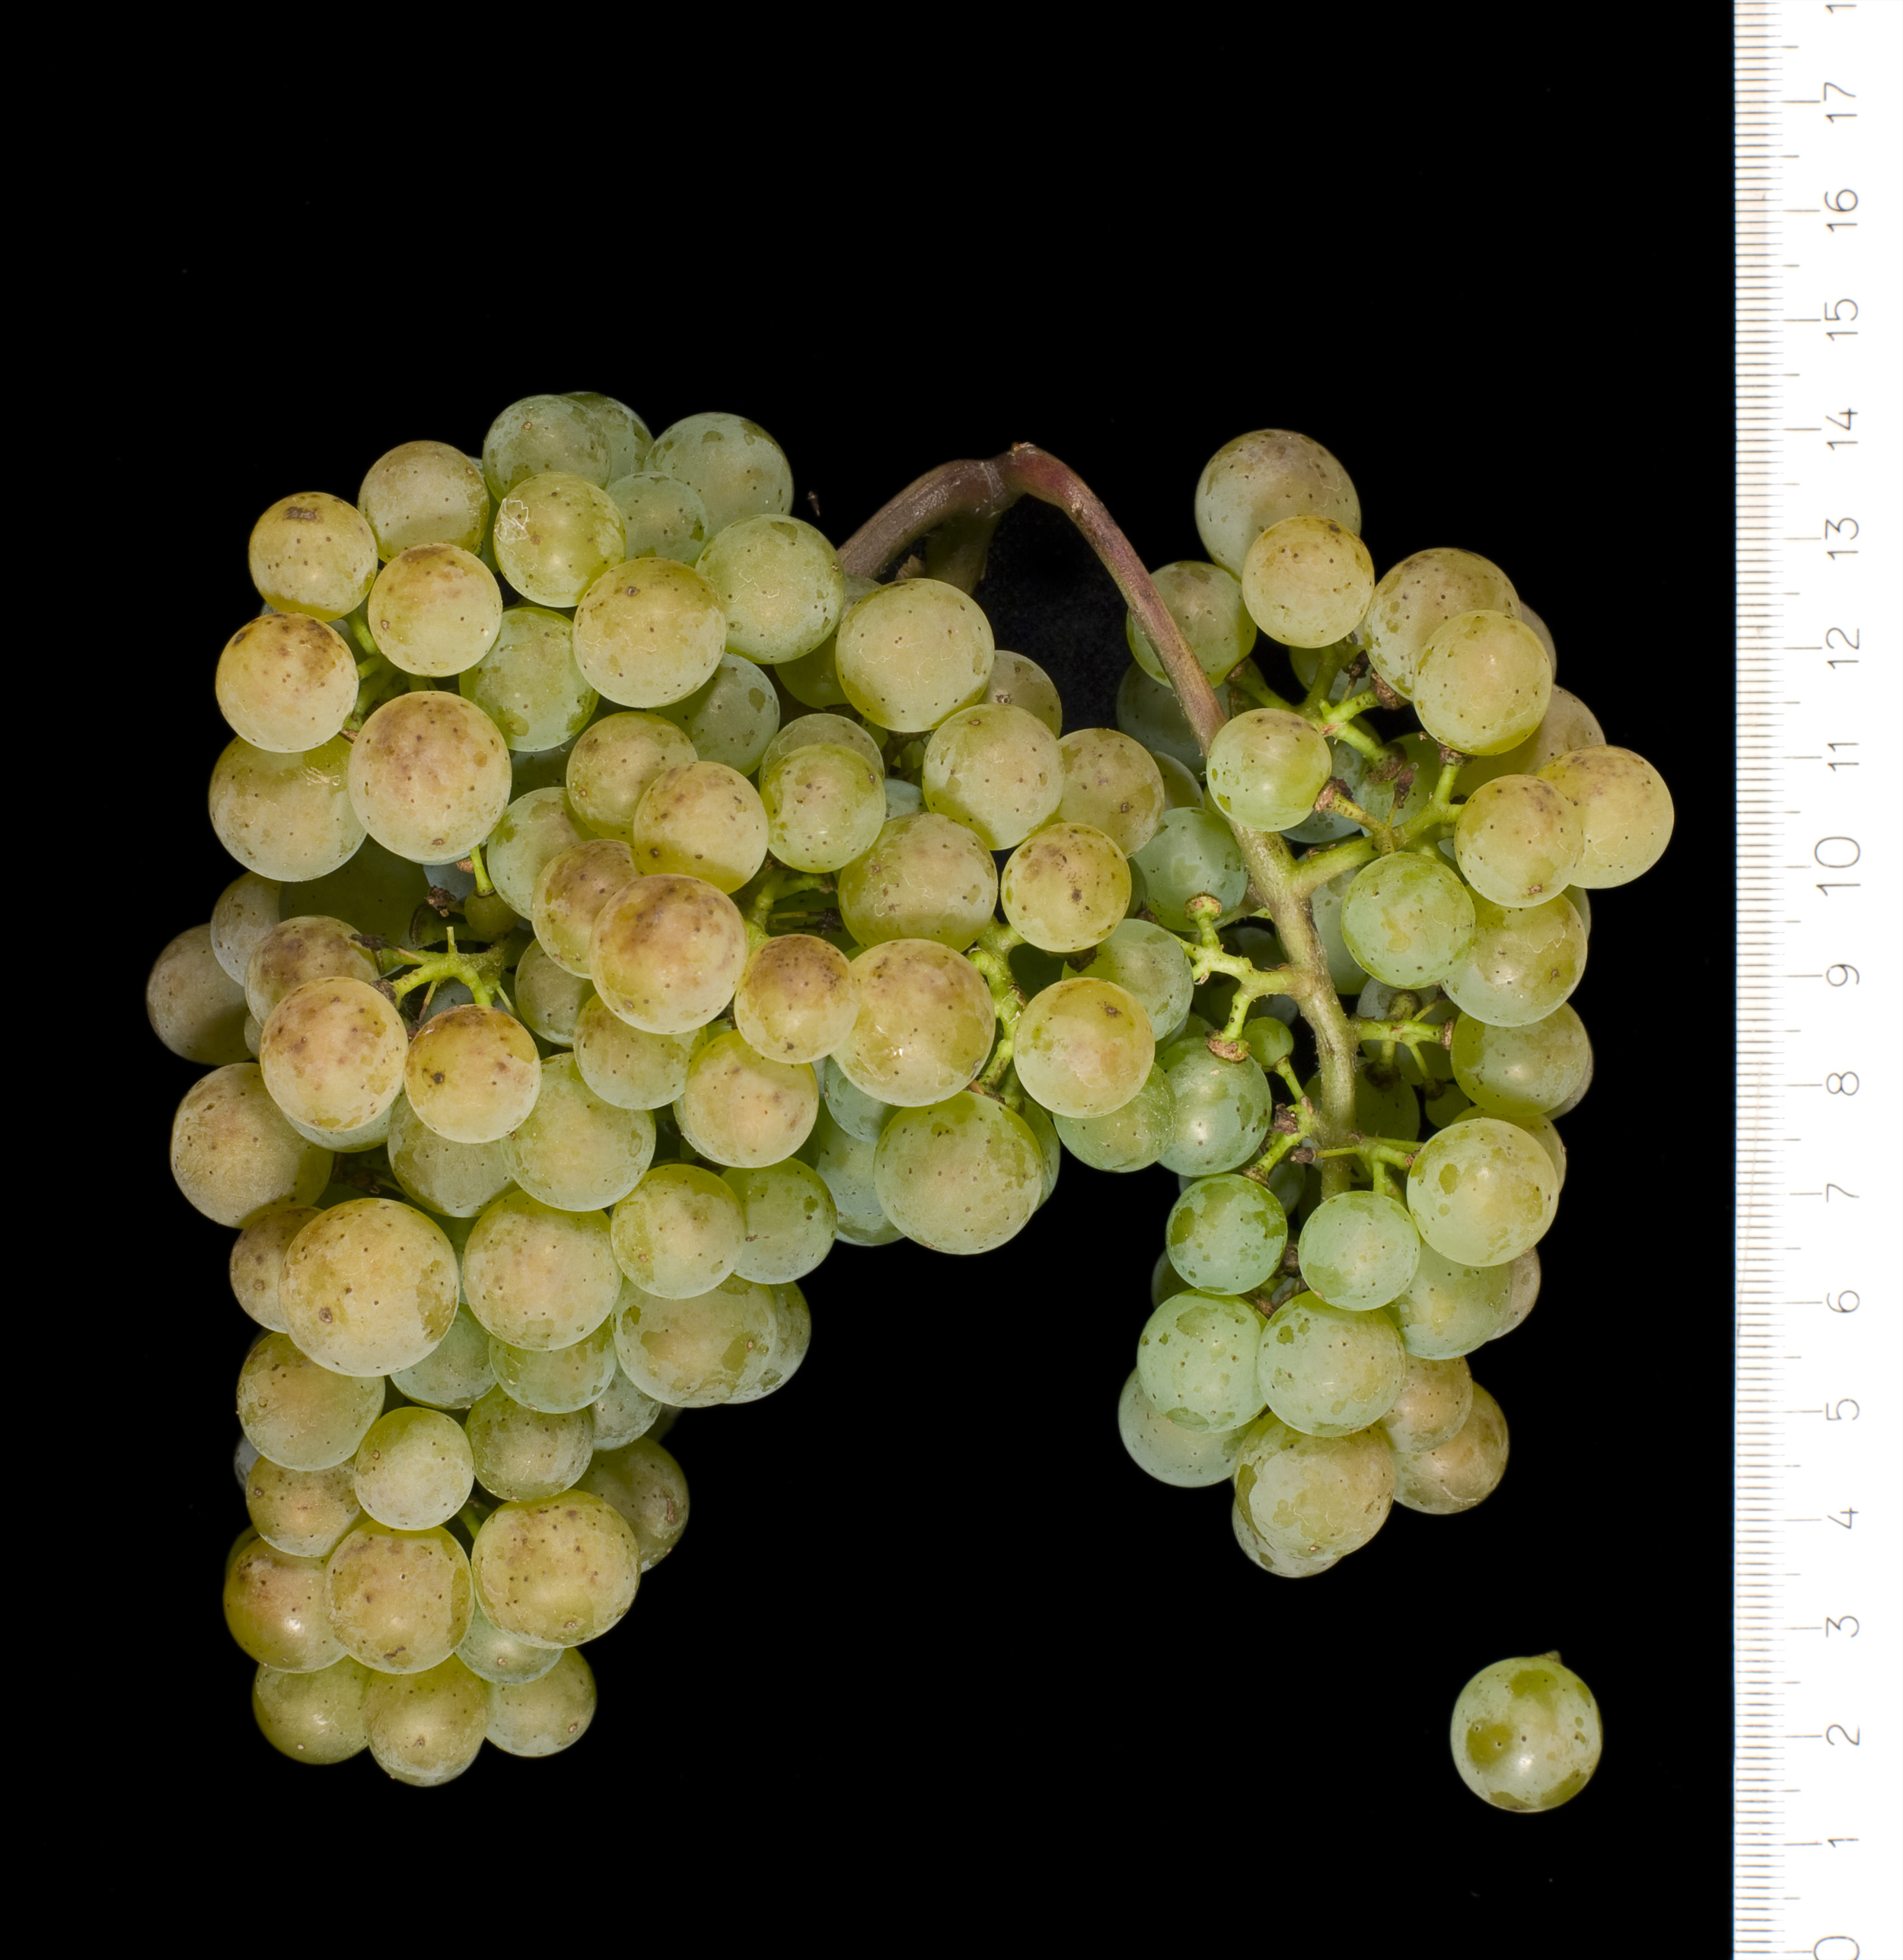 VIVC15689 ALVARINHO Cluster in the laboratory 7580